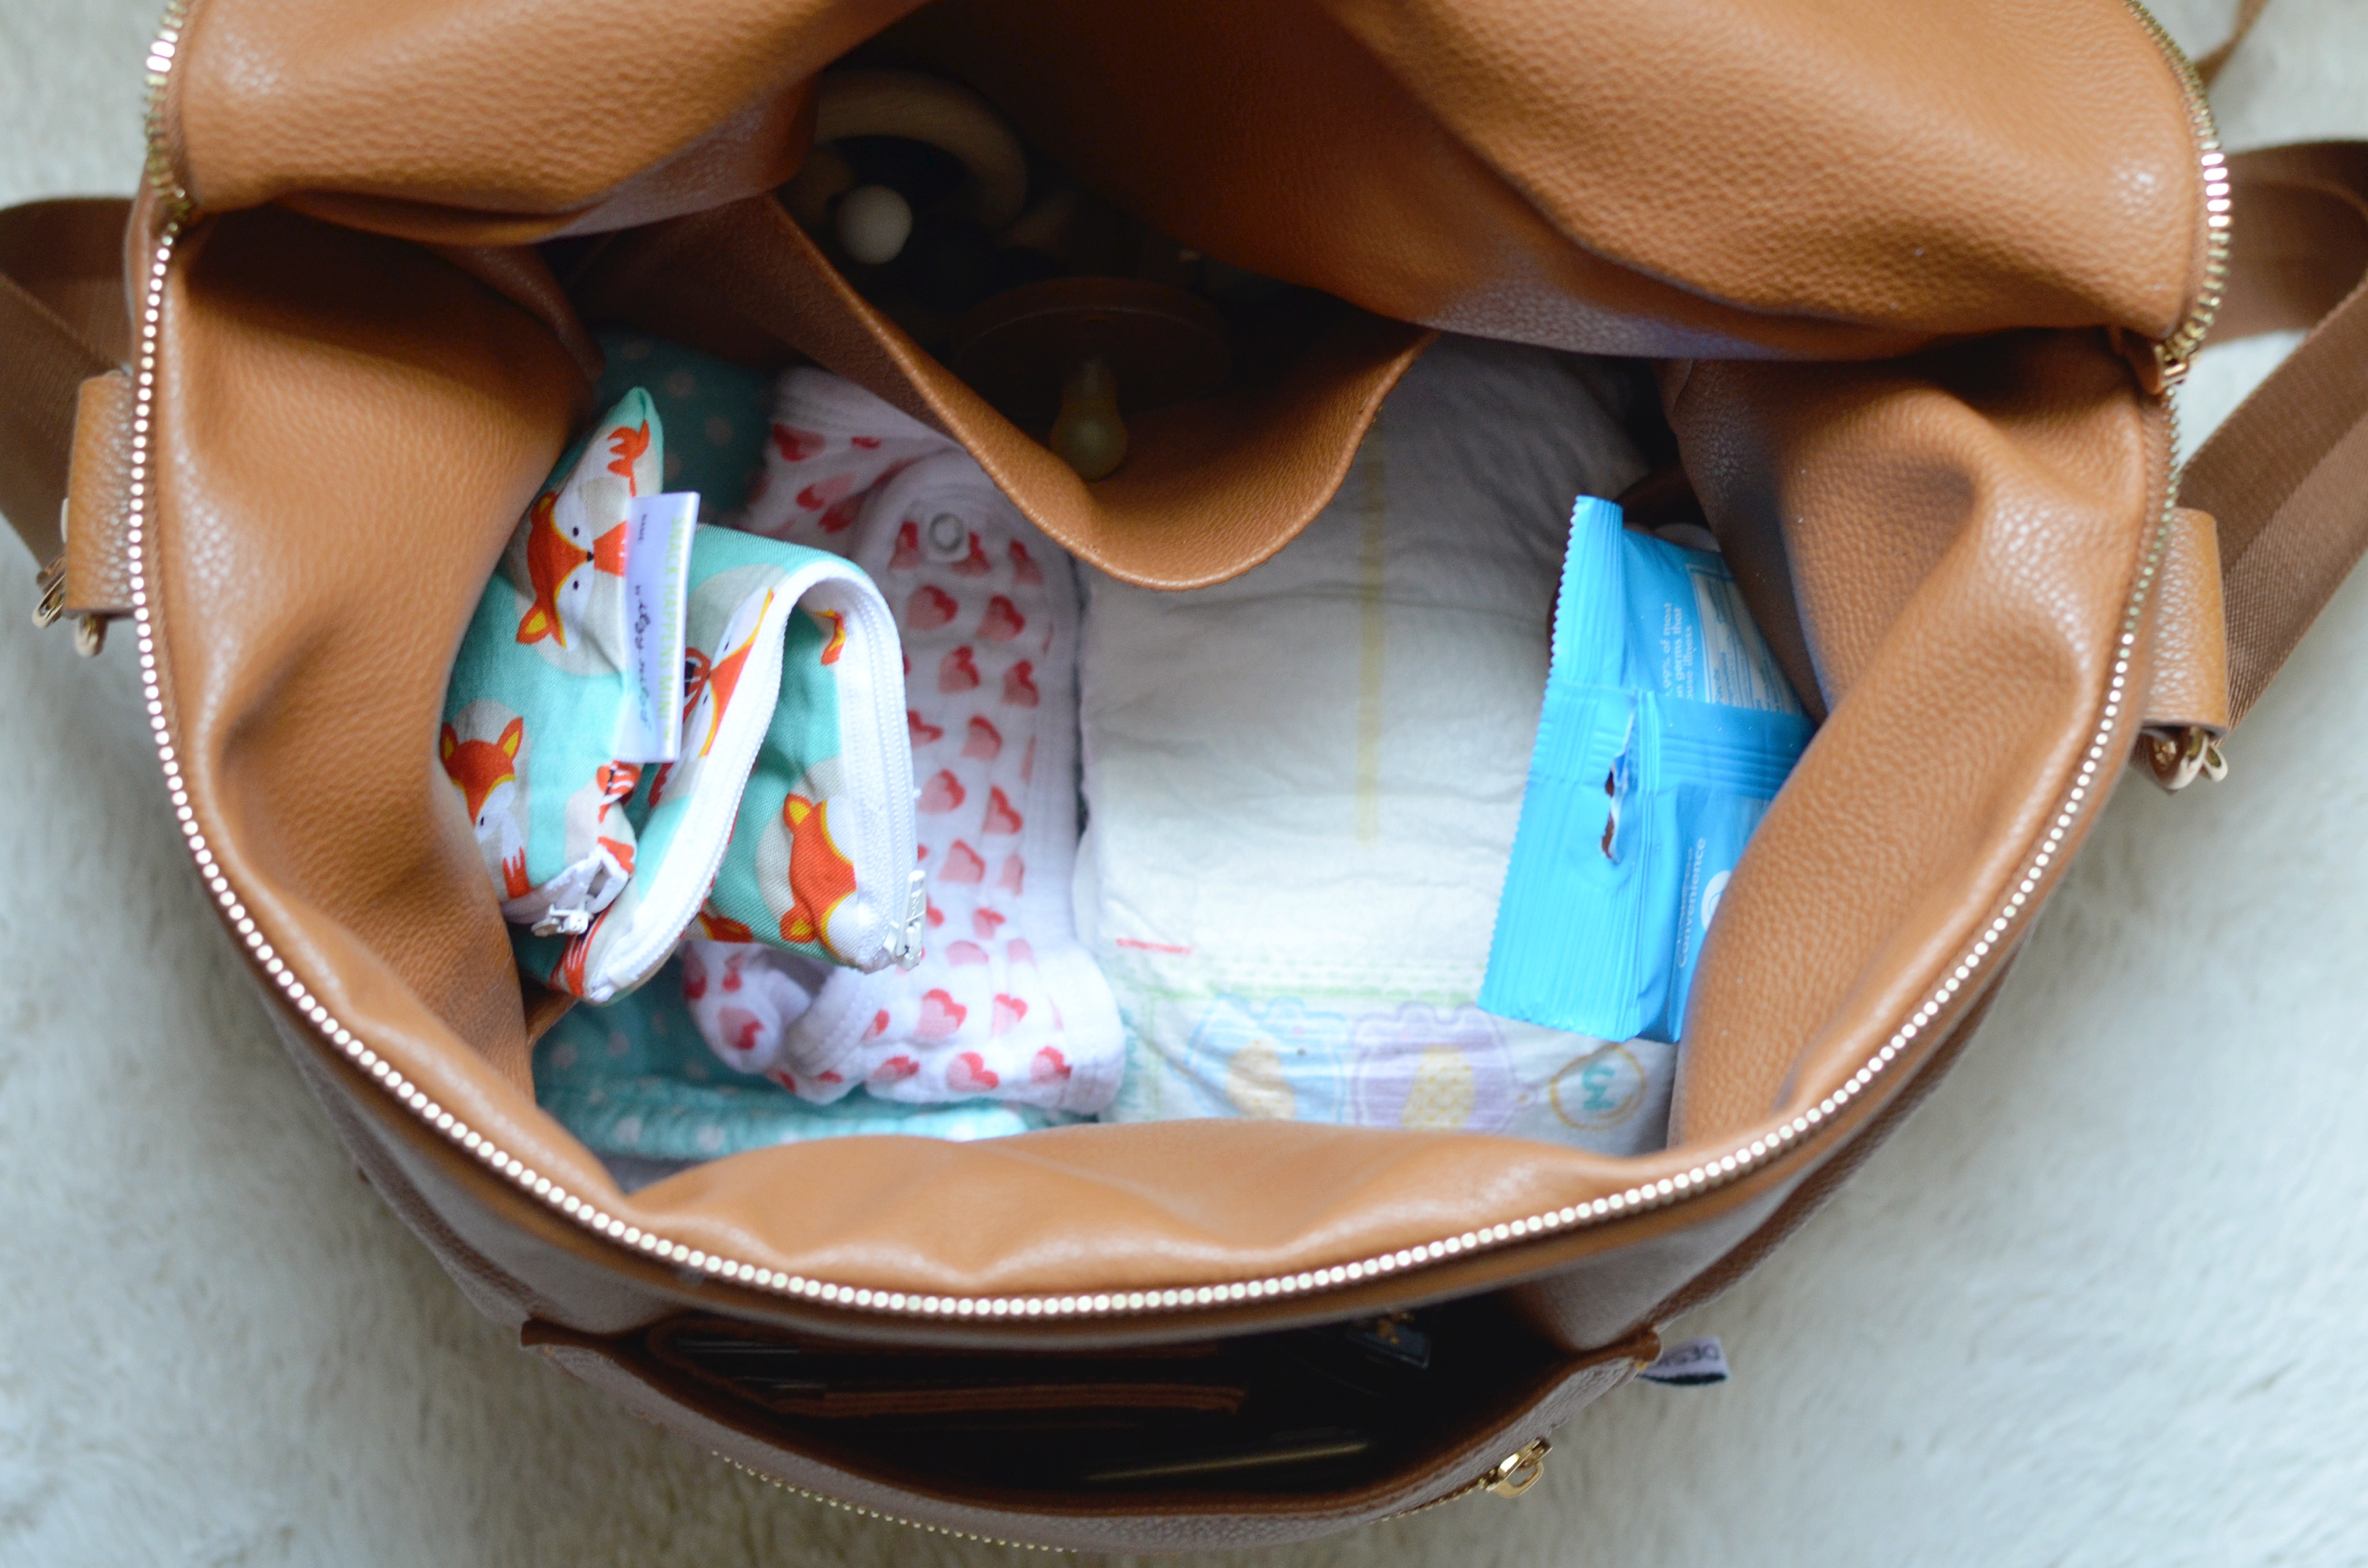 Witching All Right I Know If Youcan See My Diaper Typical Katie Fawn Diaper Bag Sale Fawn Diaper Bag Ebay So Thing About This Are A Gazillion Pockets baby Fawn Diaper Bag